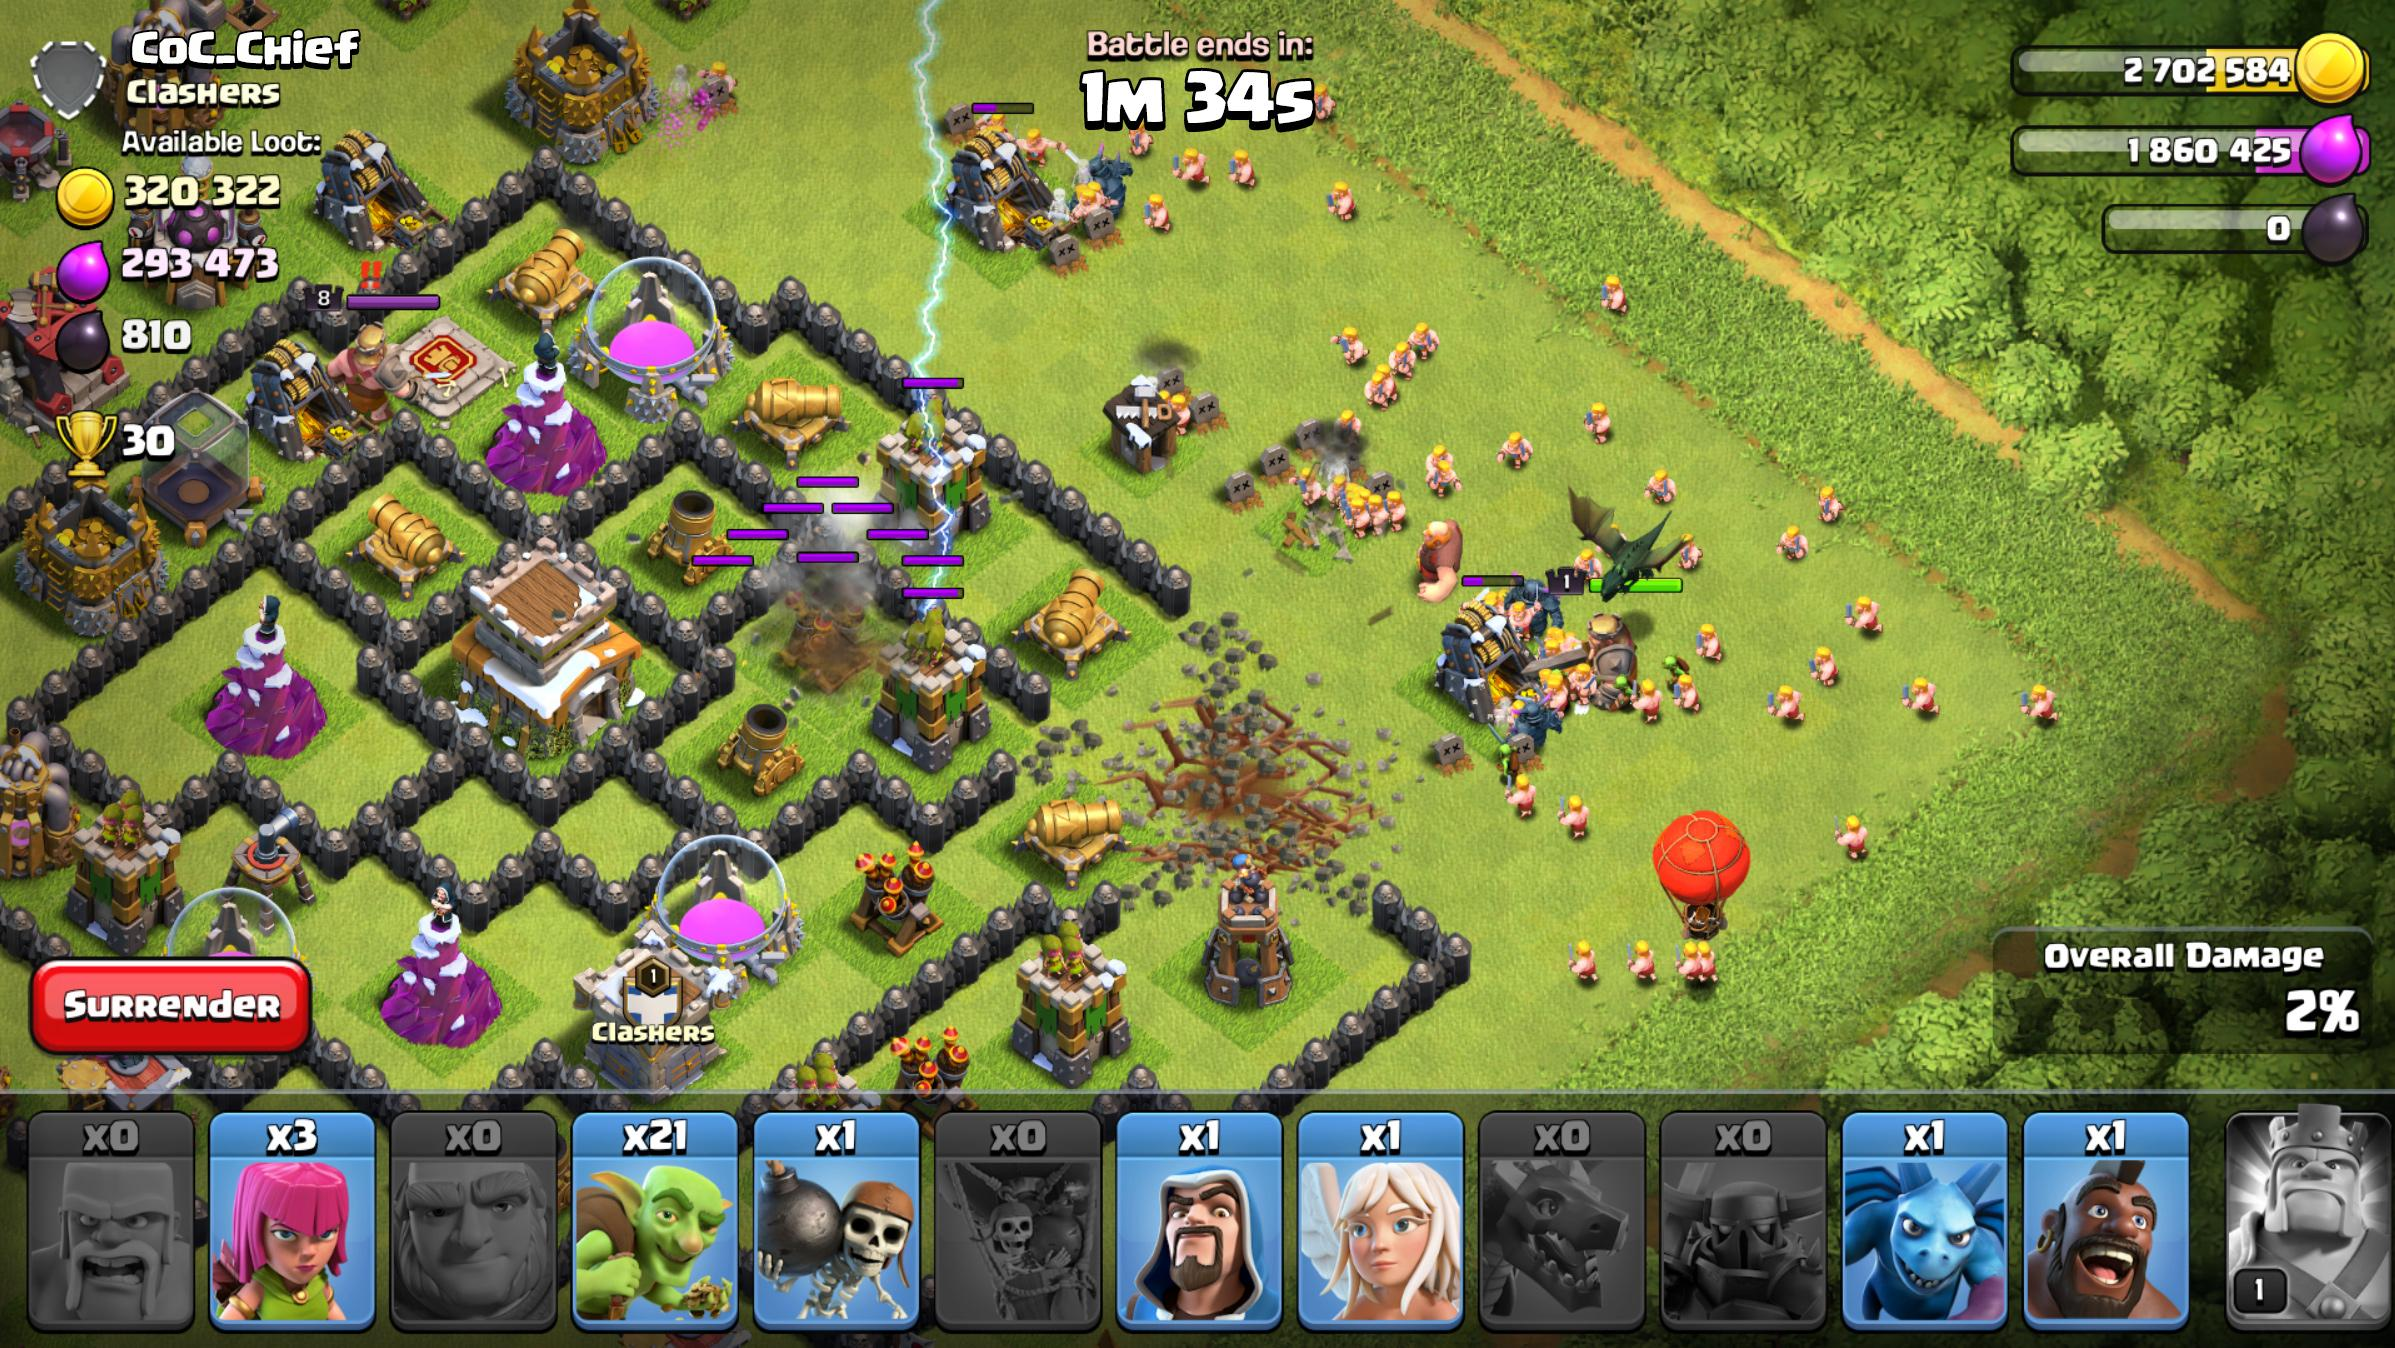 Clash of Clans for Android   Download World No.1 Epic combat strategy game  APK file for Android